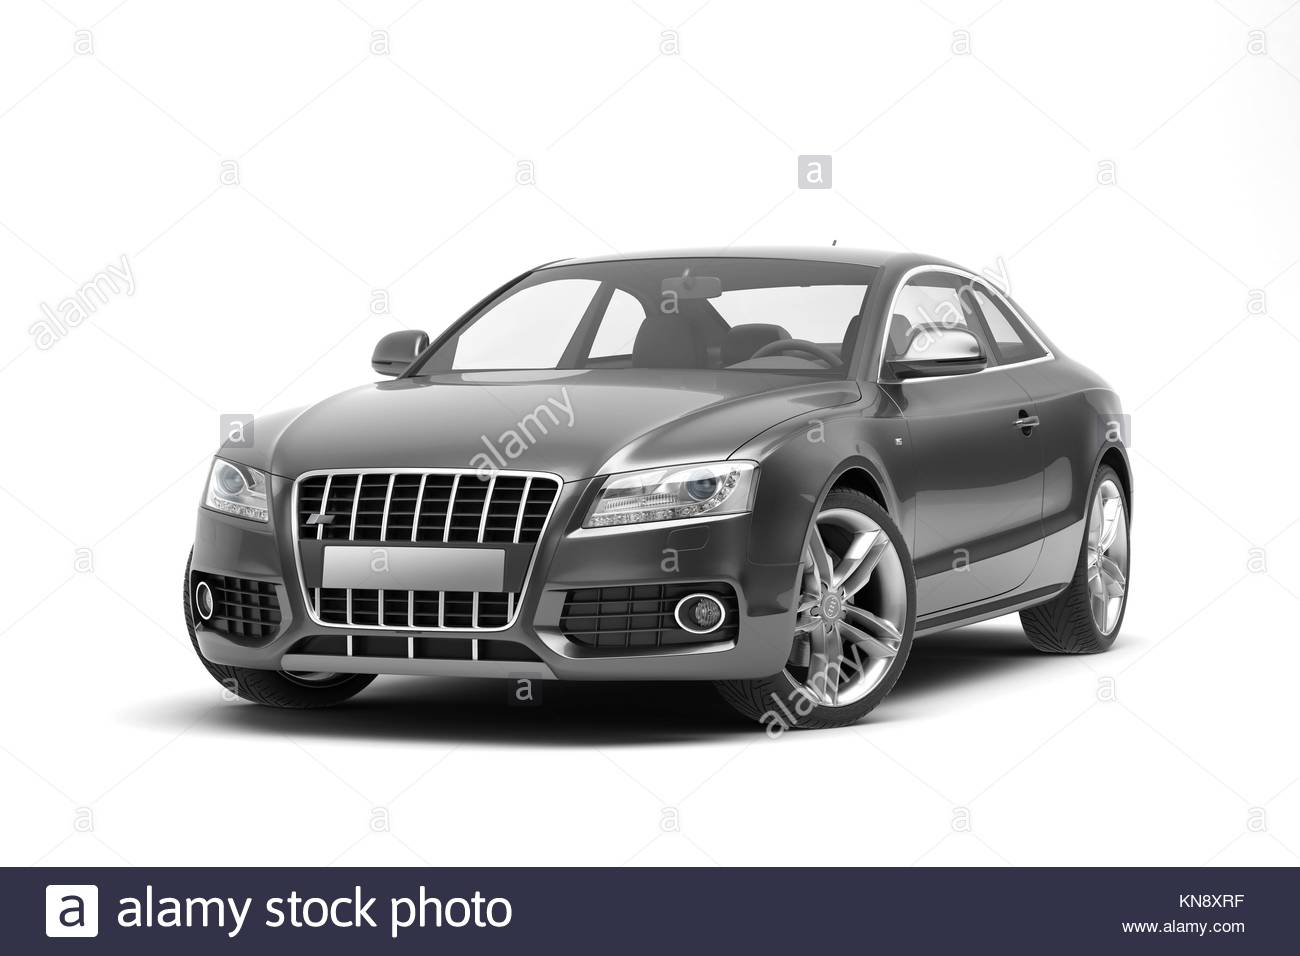 Black sport coupe car, on white beckground. - Stock Image